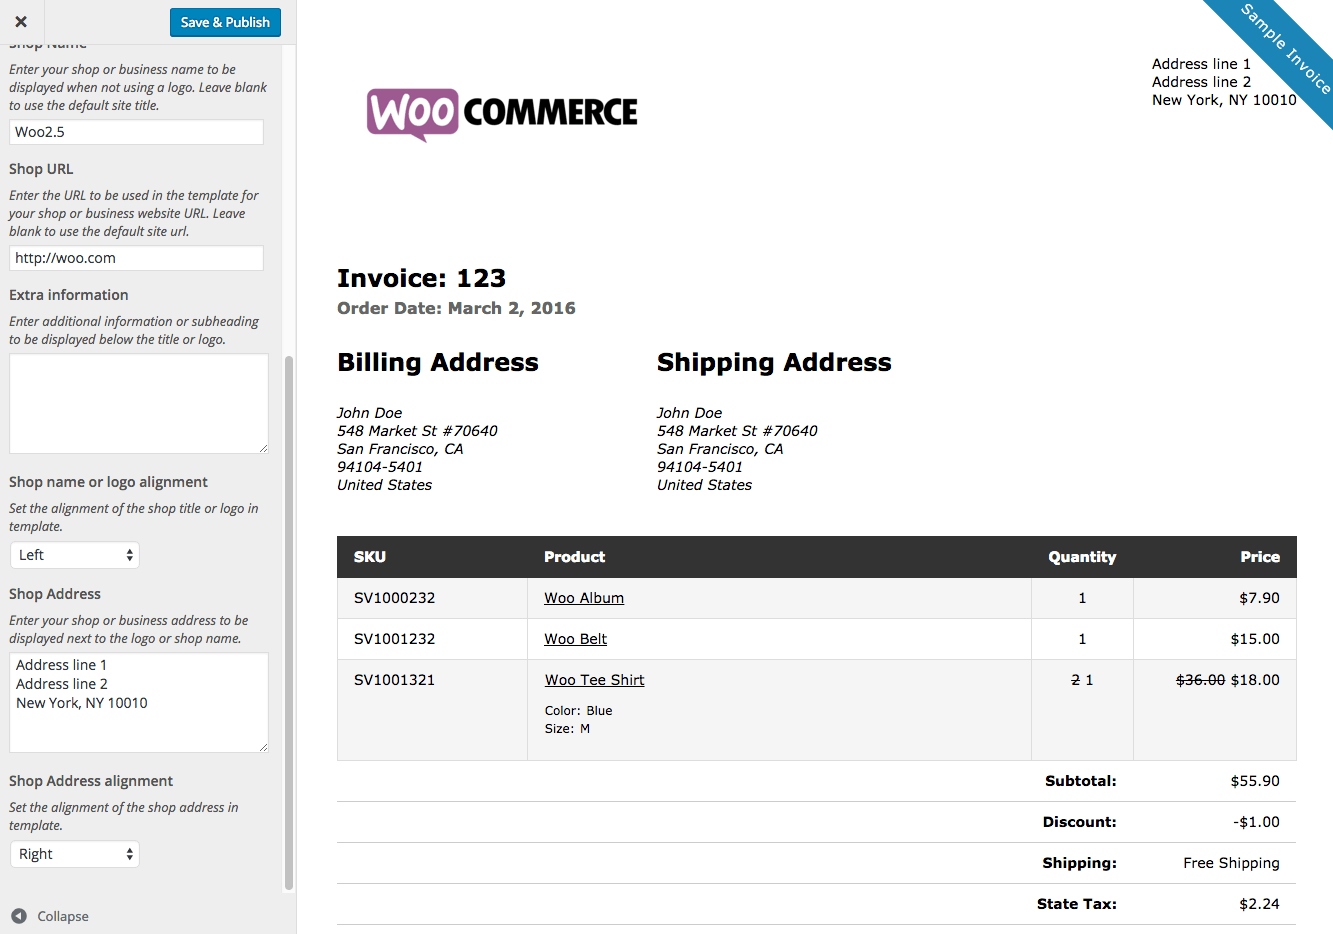 Indianaparanormalus  Winning Print Invoices Amp Packing Lists  Woocommerce With Likable Woocommerce Print Invoices  Packing Lists Customizer With Enchanting Acknowledge The Receipt Of This Mail Also Receipt Acknowledgement Sample In Addition Post Office Ltd Your Receipt And We Acknowledge Receipt Of Your Letter As Well As Costco Refund Without Receipt Additionally Rental Payment Receipt Template From Woocommercecom With Indianaparanormalus  Likable Print Invoices Amp Packing Lists  Woocommerce With Enchanting Woocommerce Print Invoices  Packing Lists Customizer And Winning Acknowledge The Receipt Of This Mail Also Receipt Acknowledgement Sample In Addition Post Office Ltd Your Receipt From Woocommercecom